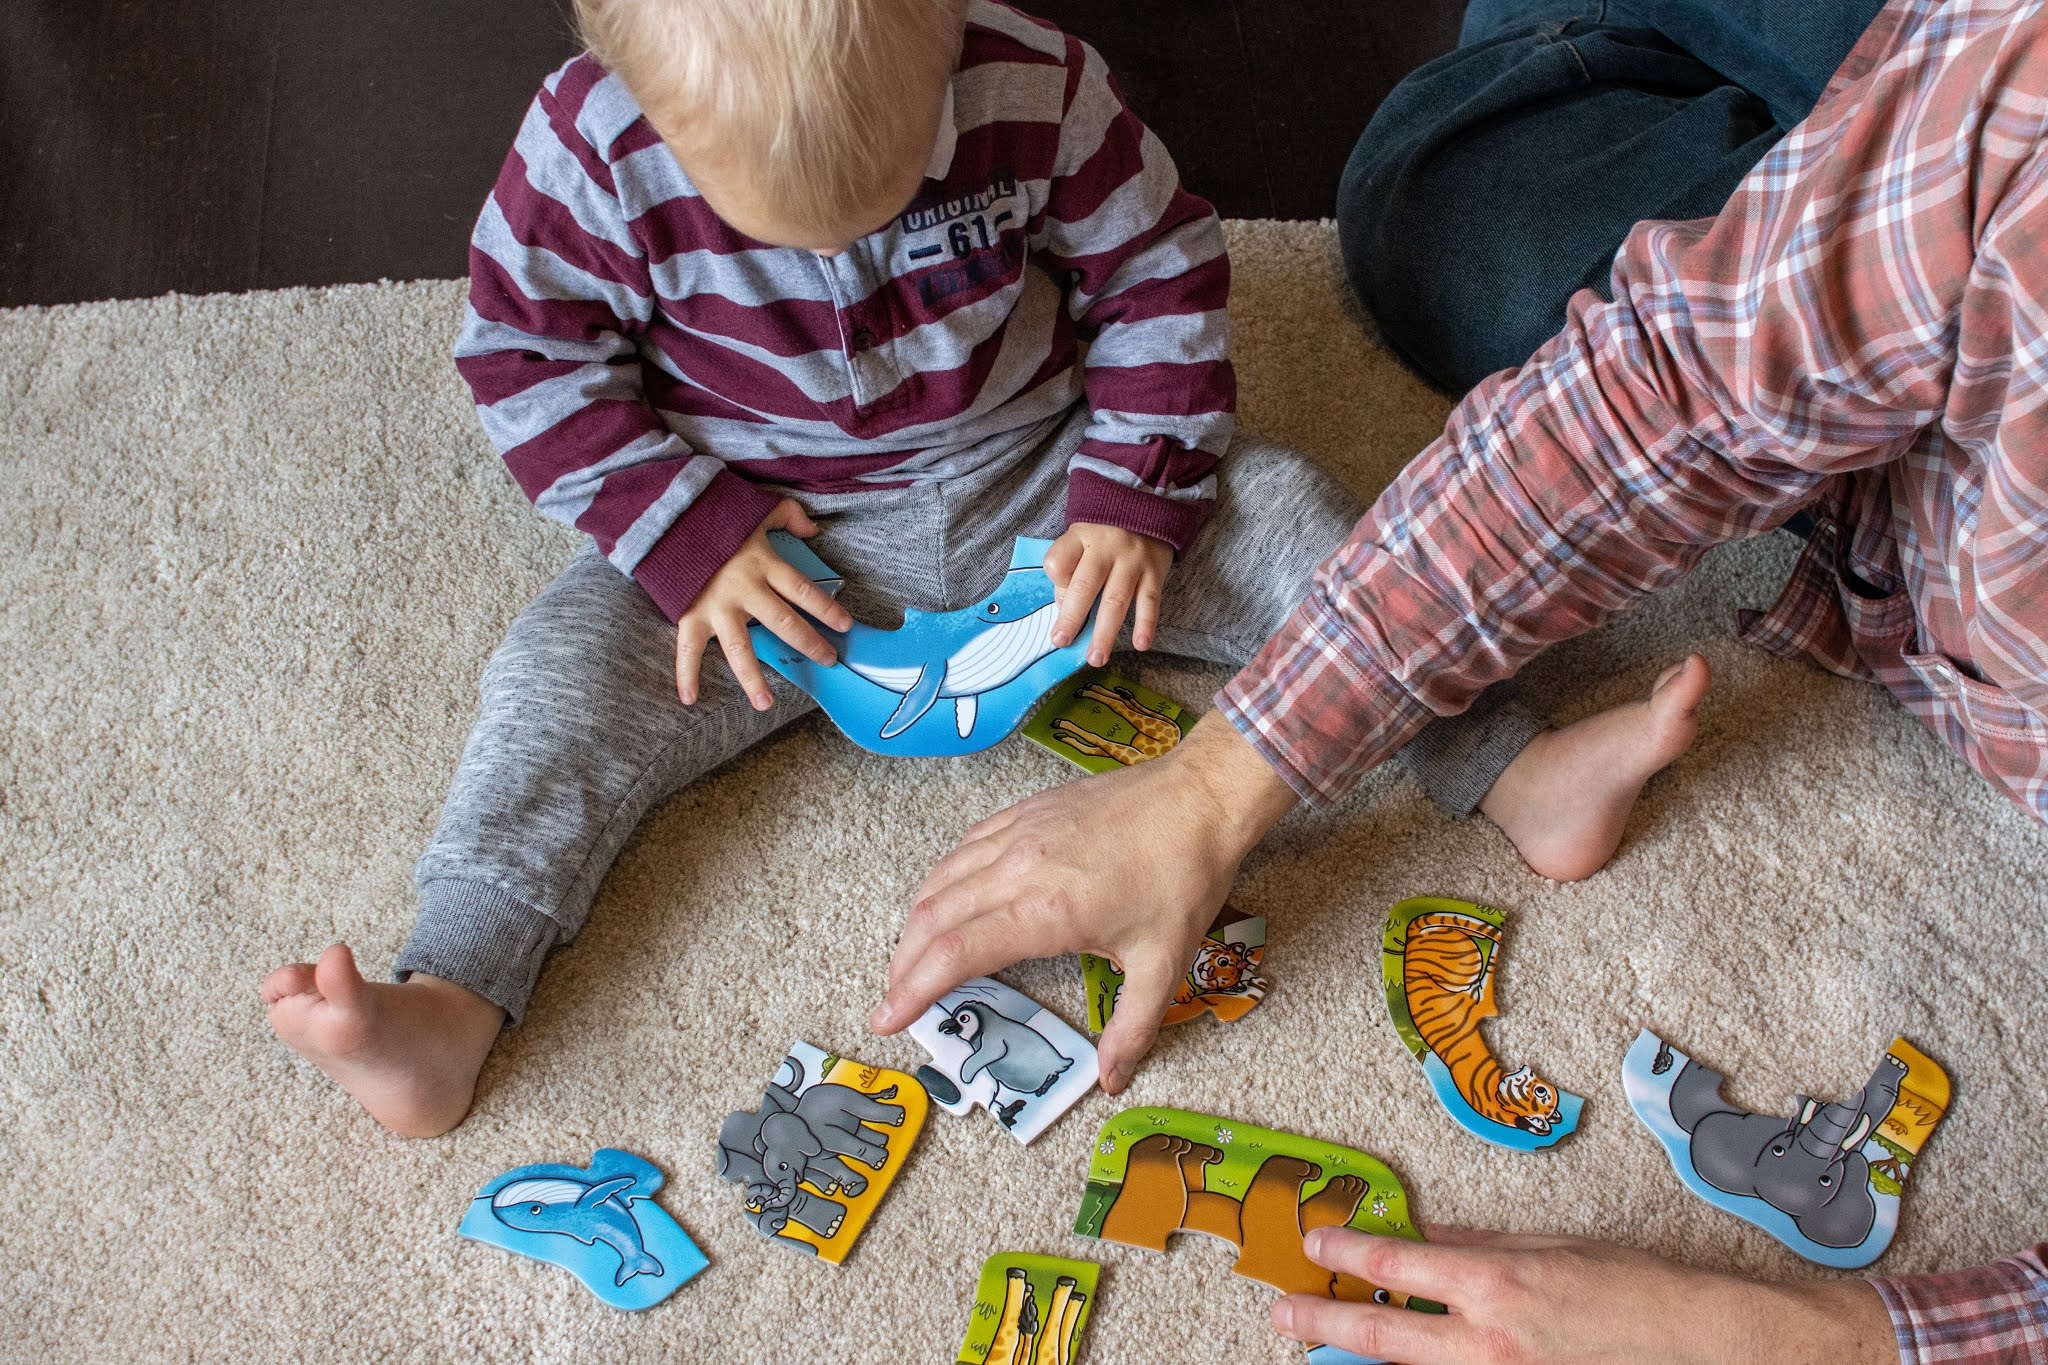 V1gjjkhycookxm New zealand's largest independently owned and operated toy store! https www countingtoten co uk 2020 11 review orchard toys toddlers preschoolers html